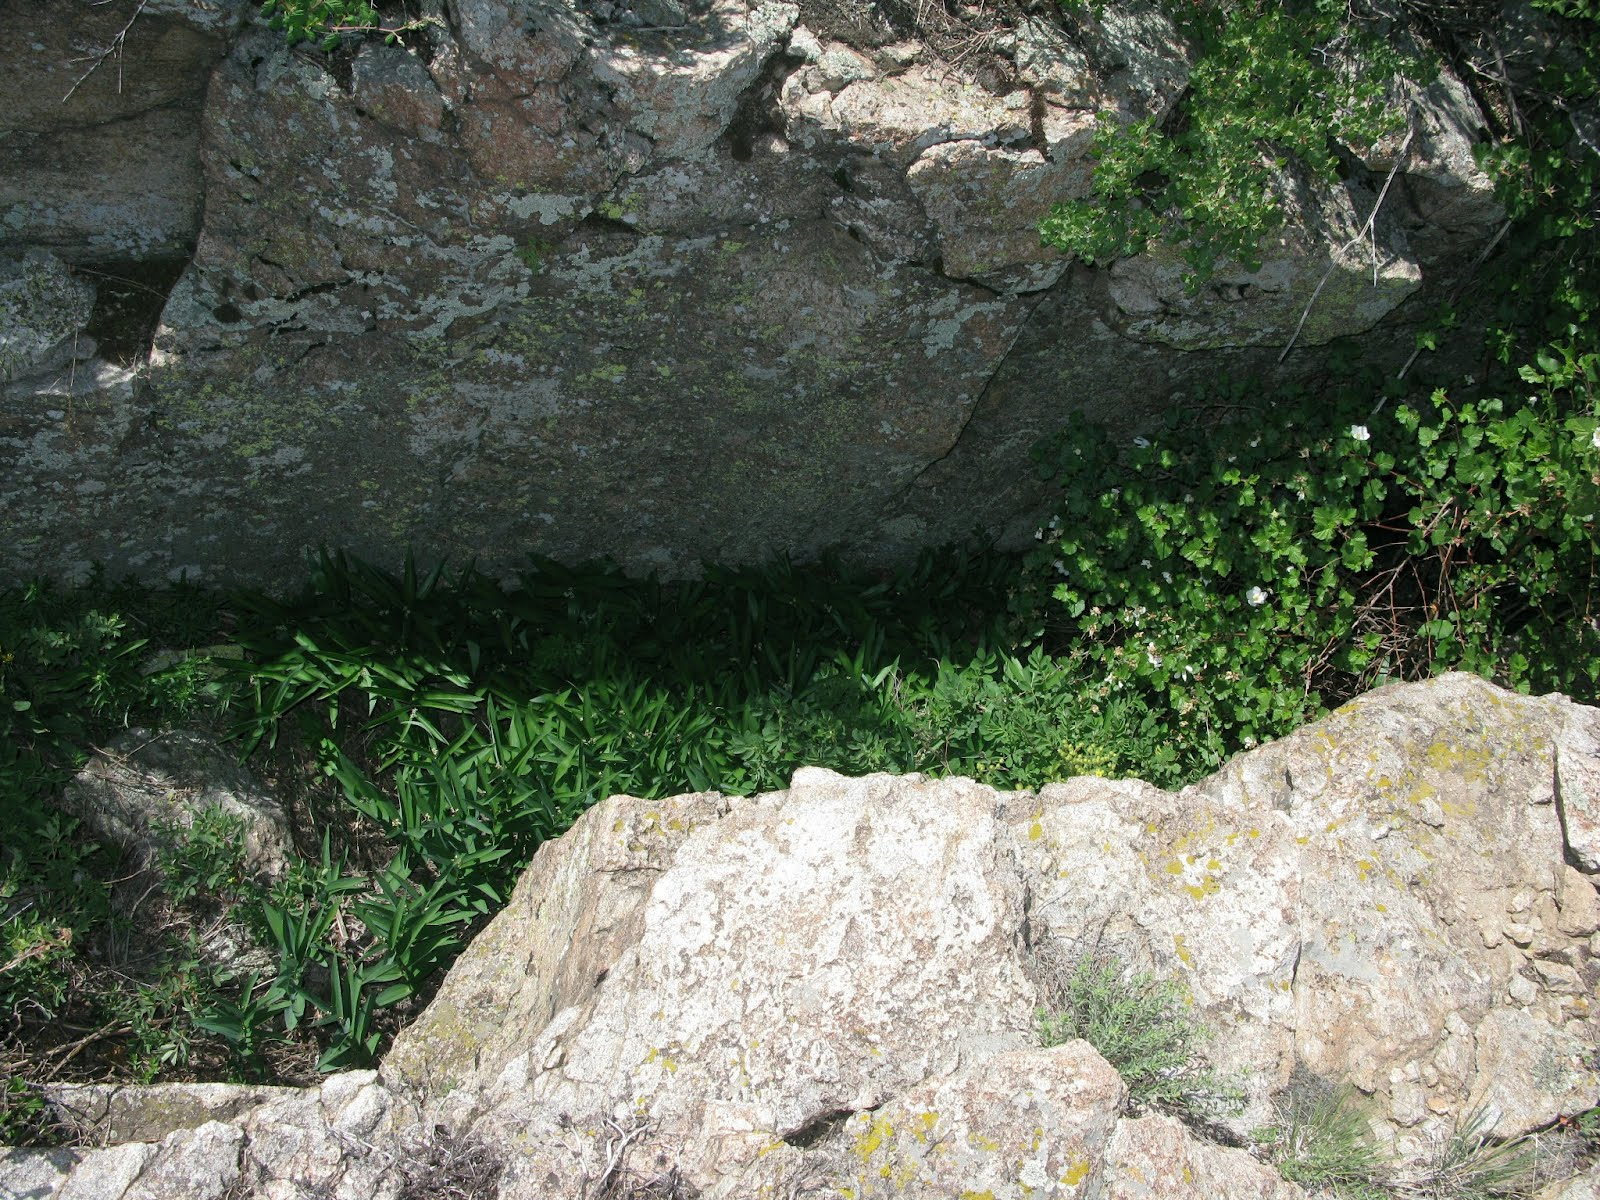 Microclimate in rock pit on Table Rock mesa